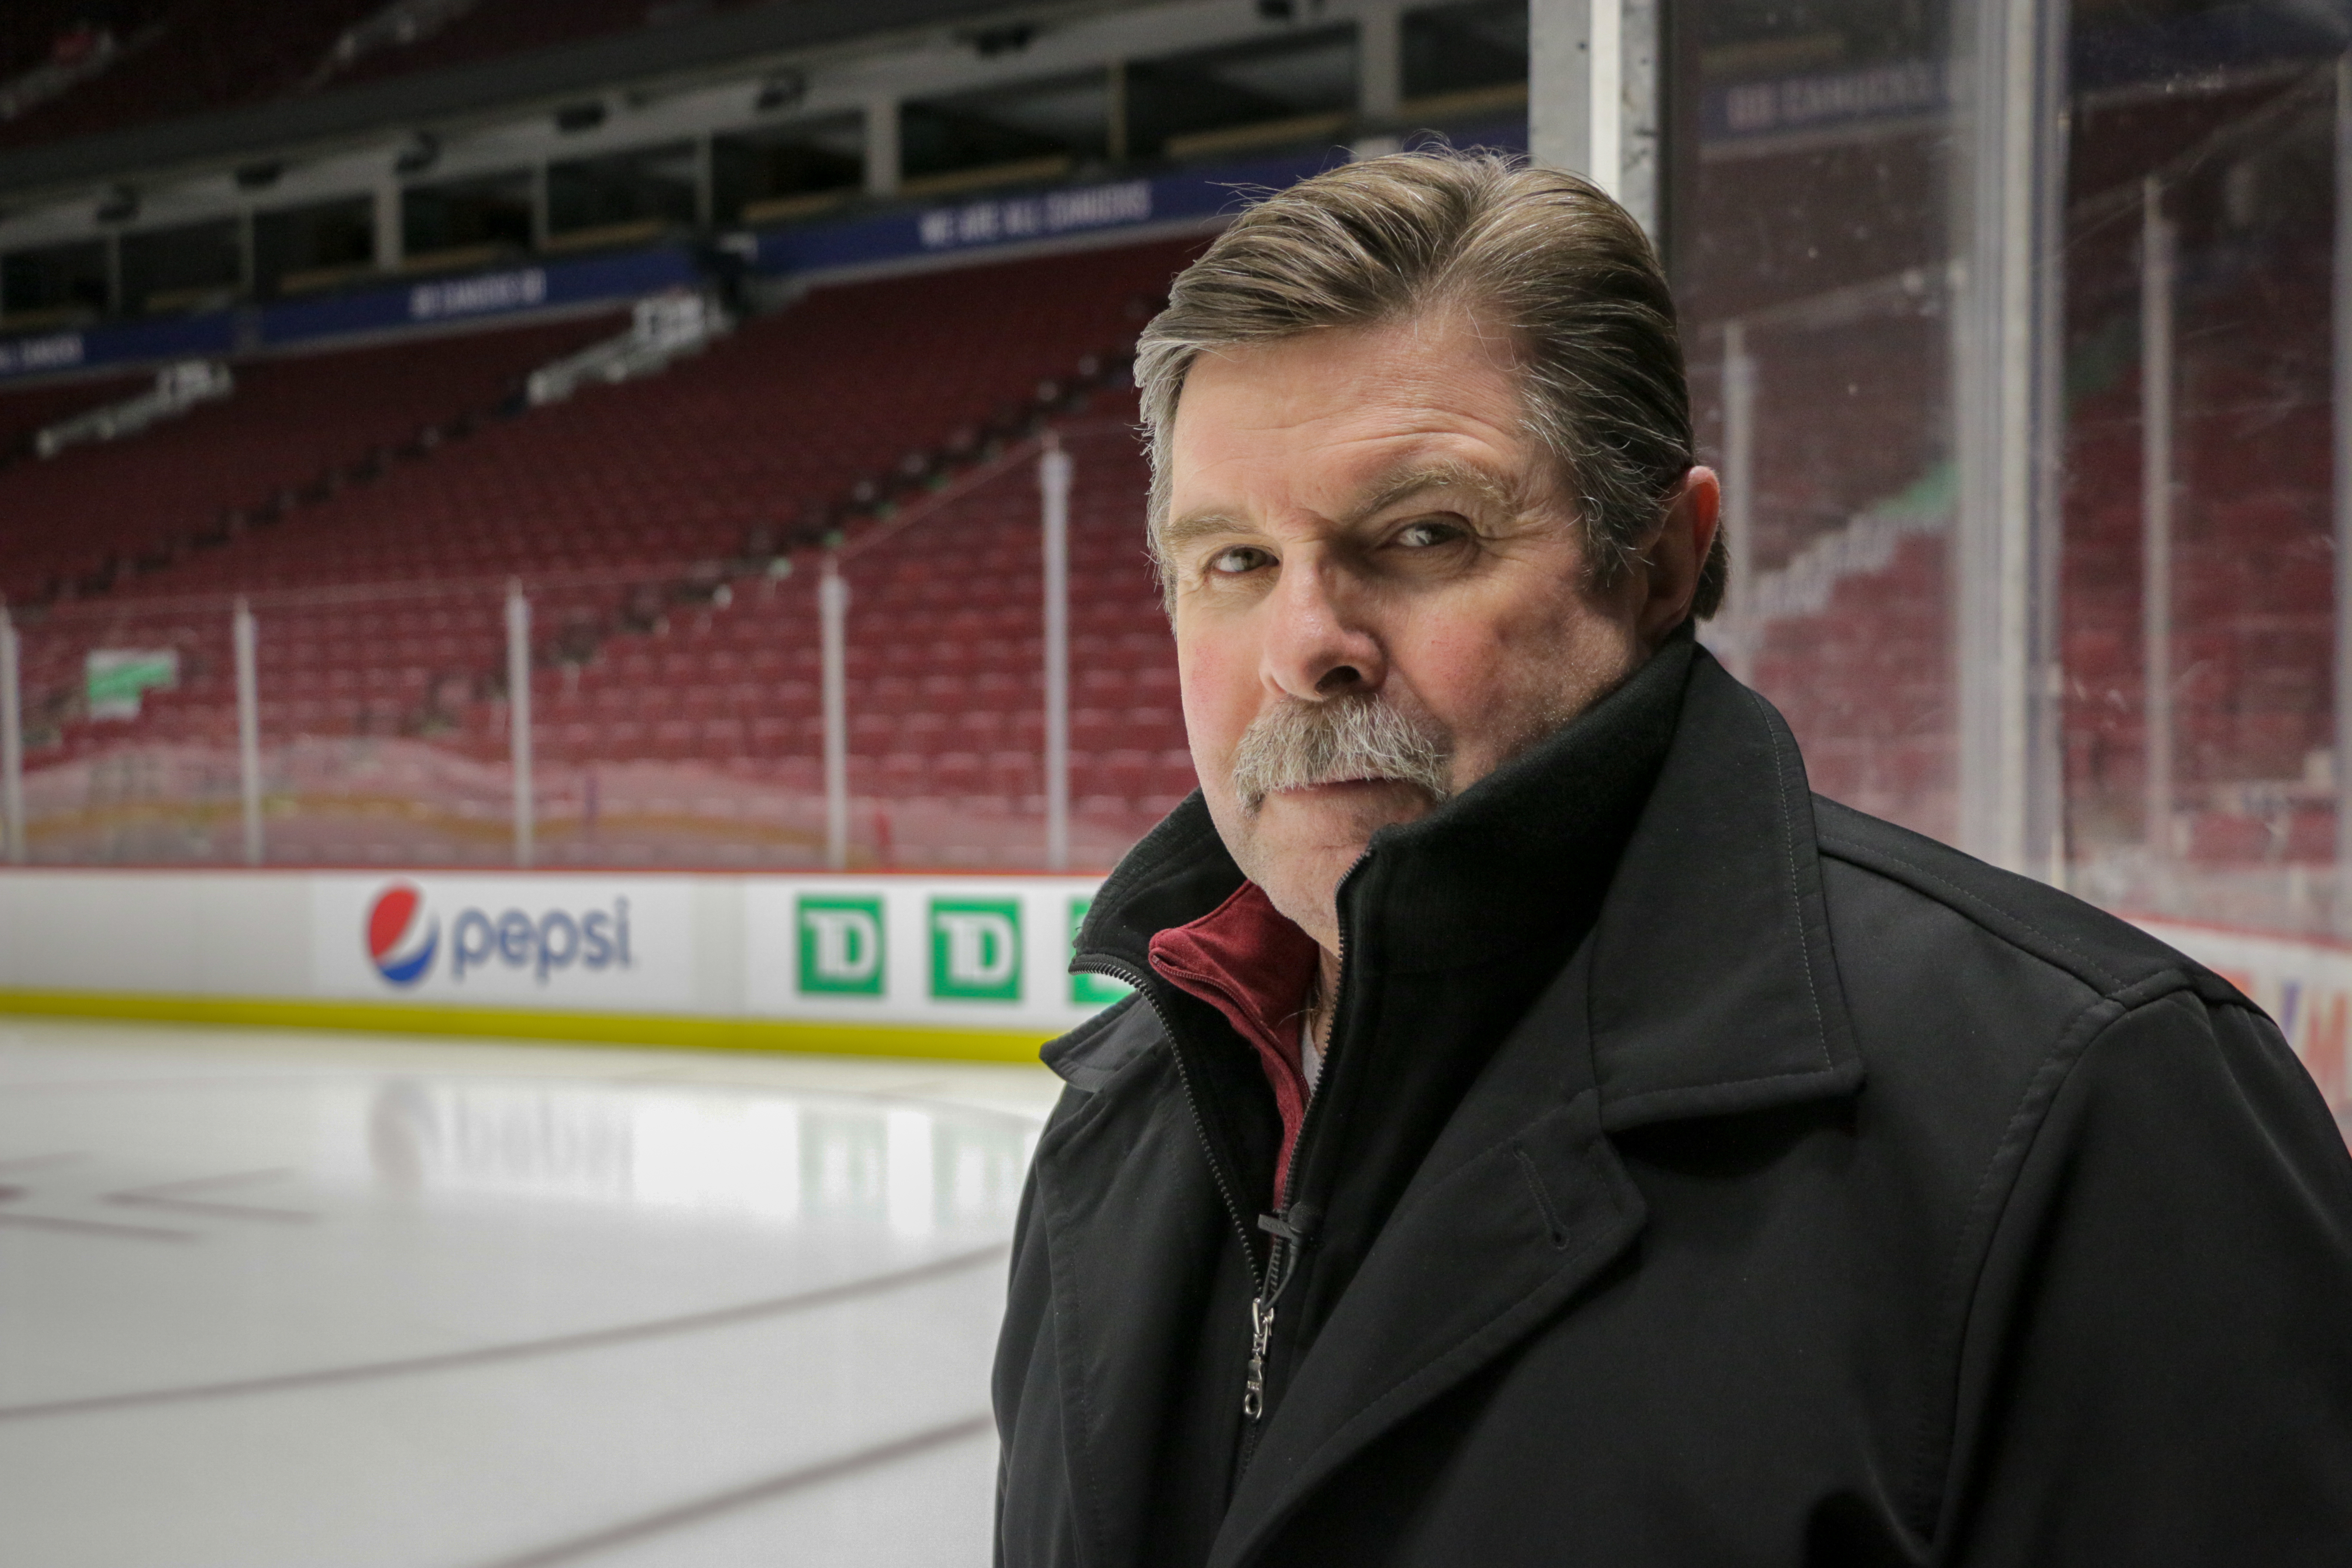 Referee Bill McCreary at Vancouver's Rogers Arena in 2019. During the 2010 Olympics, the arena was known as Canada Hockey Place. Over McCreary's right shoulder is the rink corner he was in when Sidney Crosby scored the golden goal. (Christian Amundson/CBC)